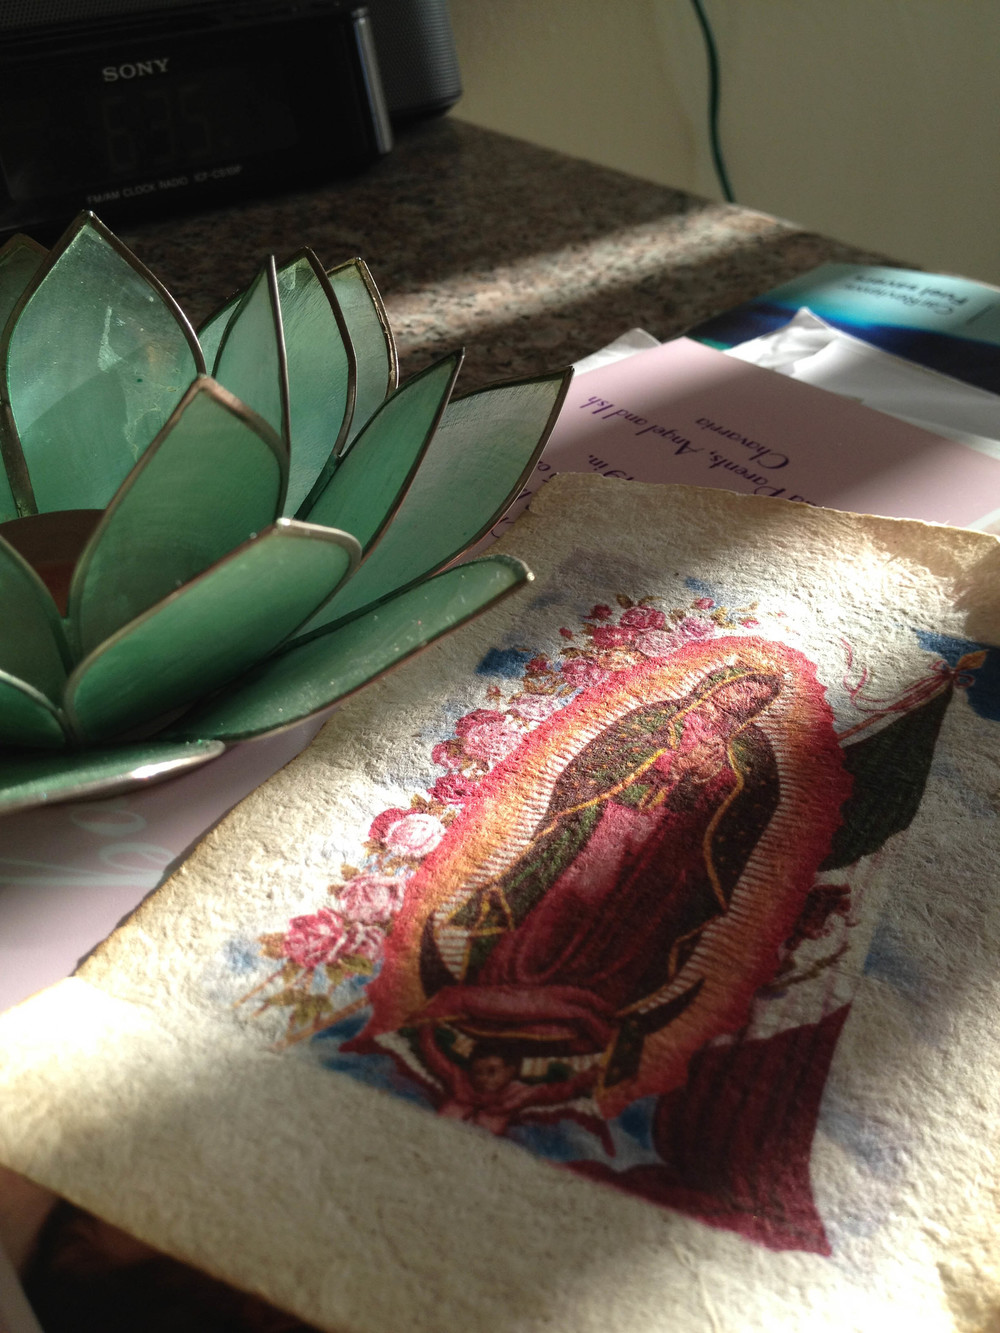 I have an obsession with Virgin Mary prints, lotus flowers,and natural light.